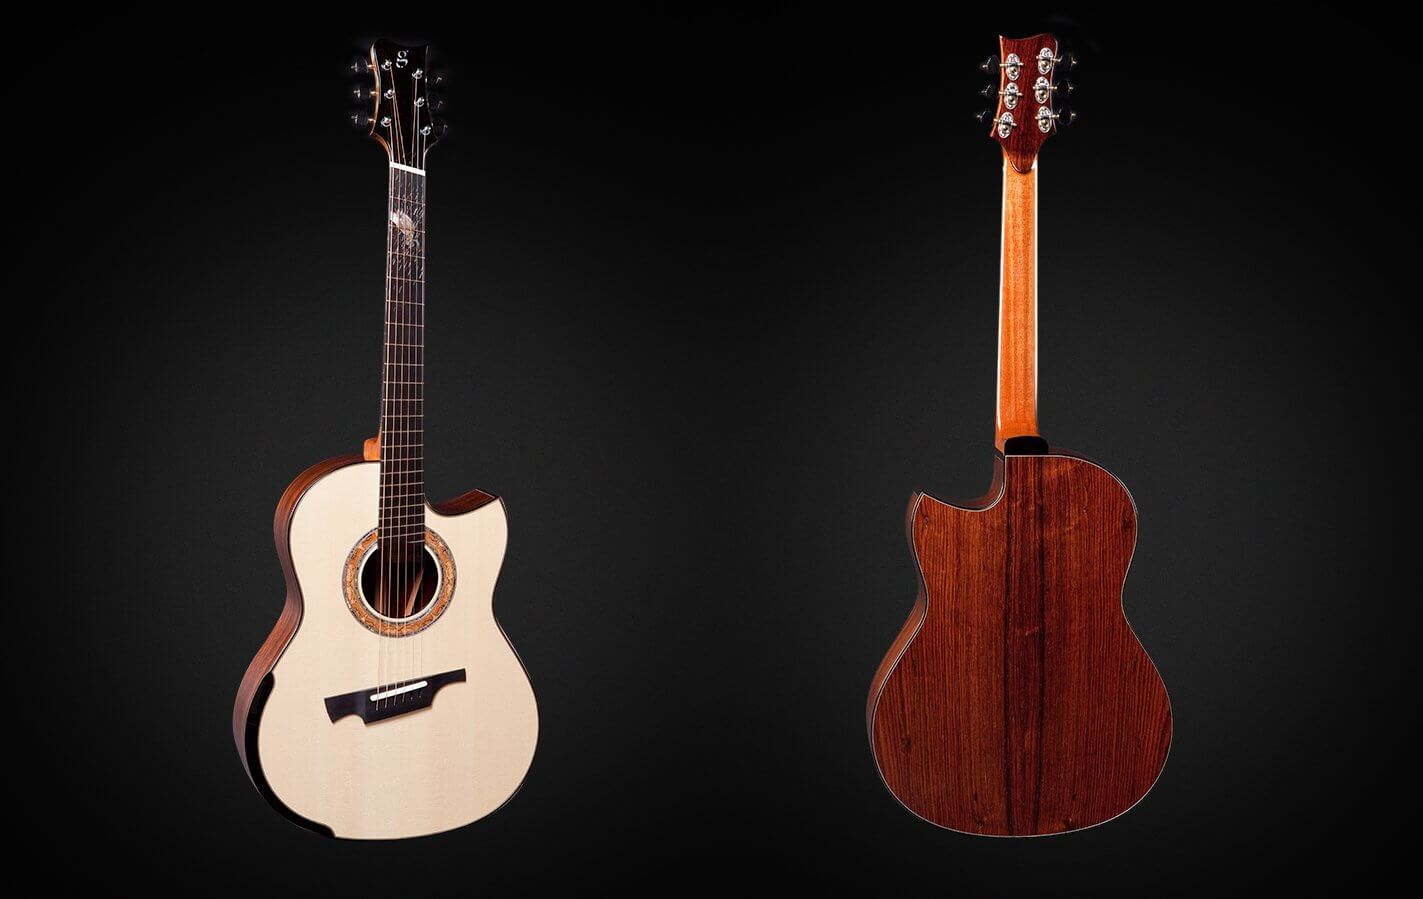 Greenfield Guitars | Fine handmade Acoustic Guitars Model G1, DADGAD fanned fret, Alpine spruce, Amazon rosewood, the dragonfly, Laskin arm rest